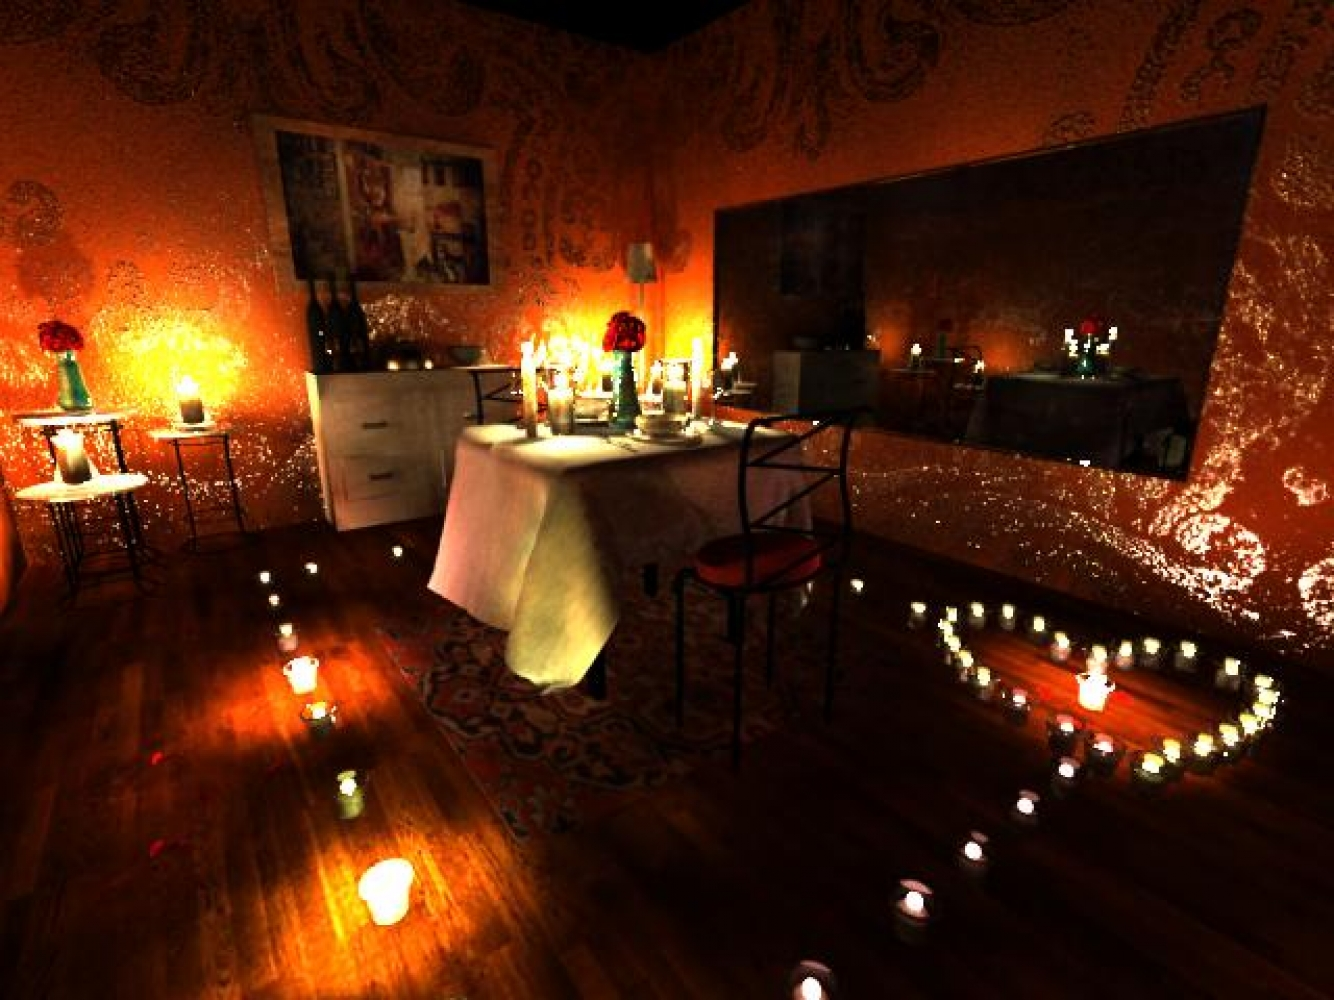 Romantic bedroom at night - Romantic Proposal With Candles